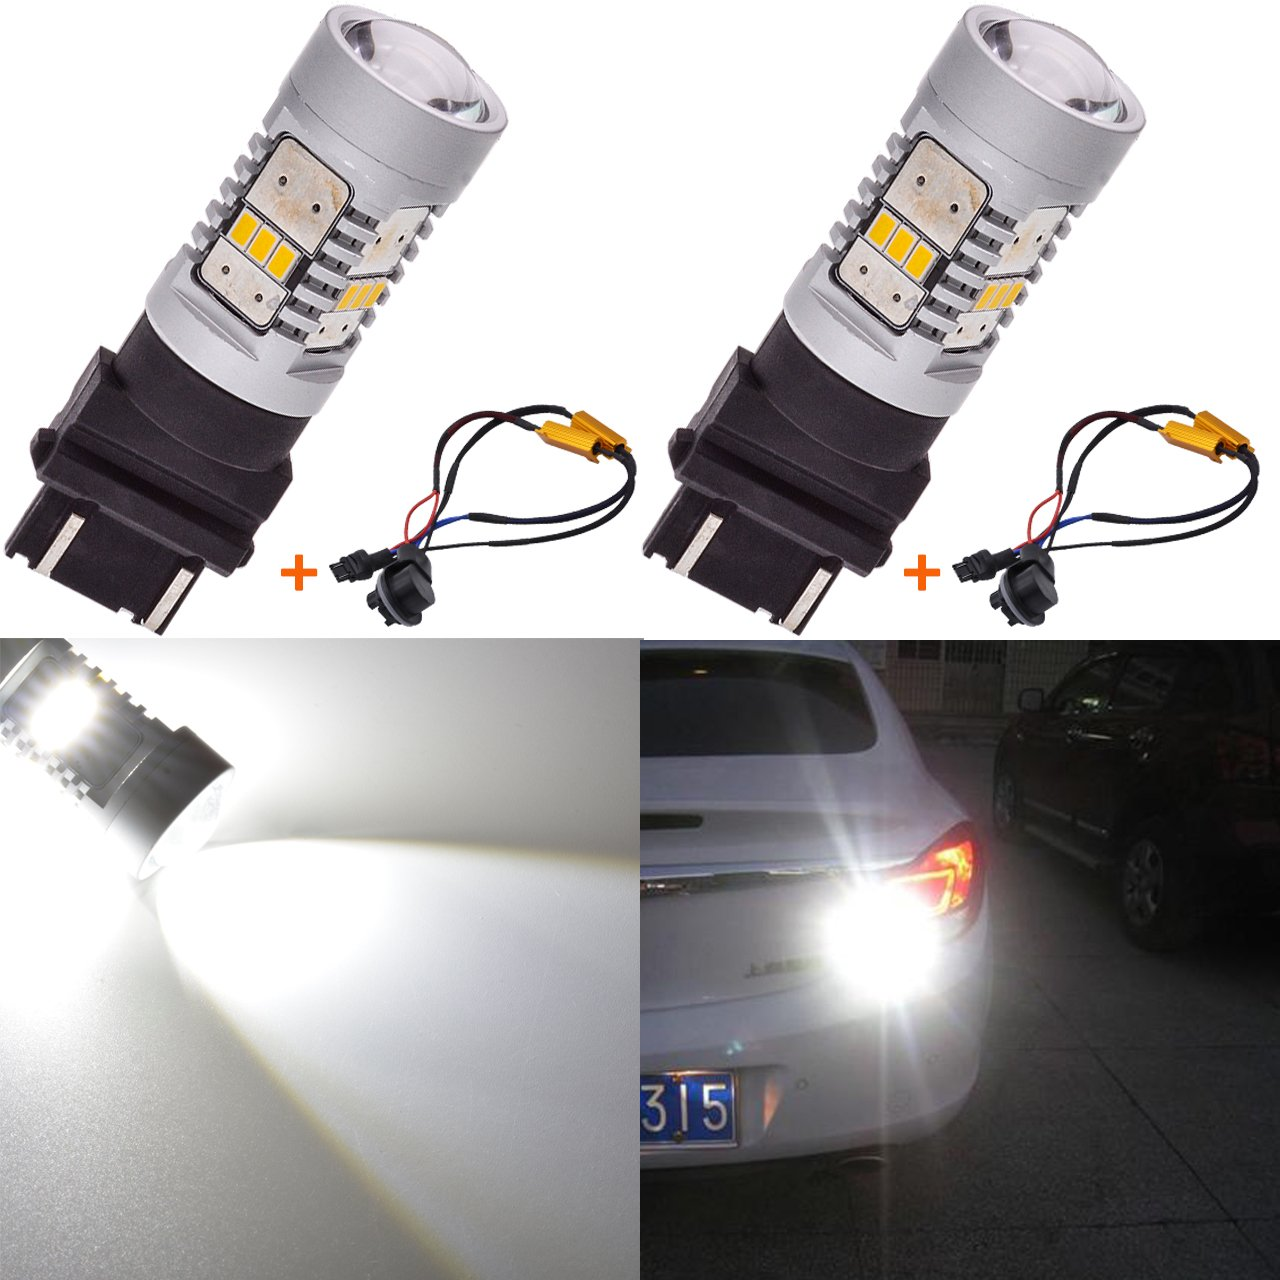 KaTur 1800LM White 7440 7440NA 7441 992 LED Replacement Bulb 14SMD CREE 3020 RV Camper SUV MPV Car Turn Signal Bulbs Tail Brake Light Lamp Backup Lamps (Pack of 2) 2AM-CL-1241-7440-White